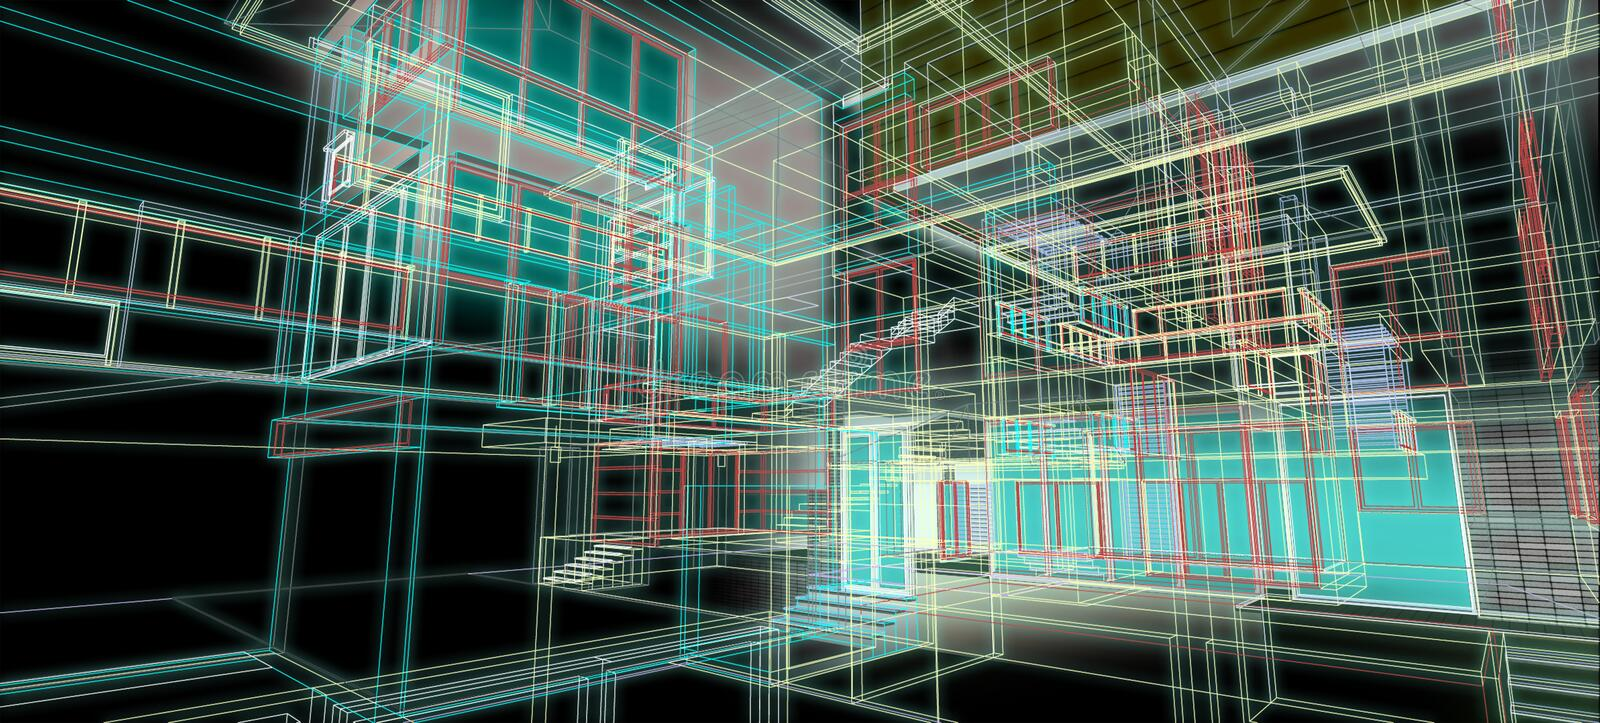 Architecture design concept 3d perspective wire frame colorful rendering with some material black background for abstract stock illustration